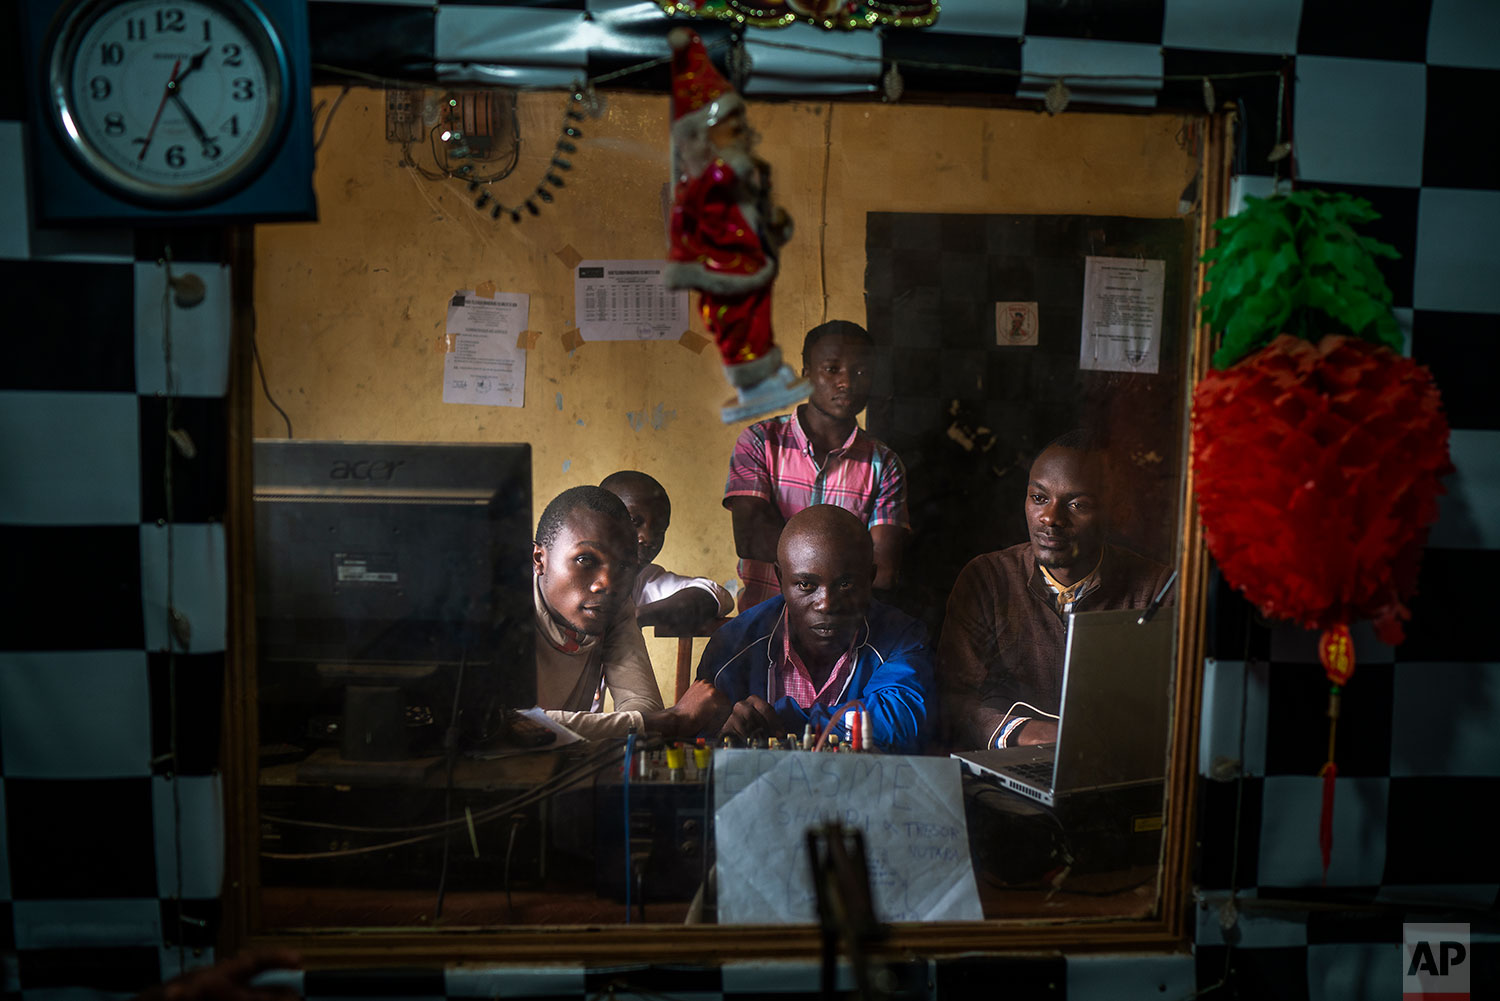 In this July 13, 2019 photo, Congolese journalists broadcast an Ebola awareness program from a local radio station in Beni, Congo DRC. (AP Photo/Jerome Delay)